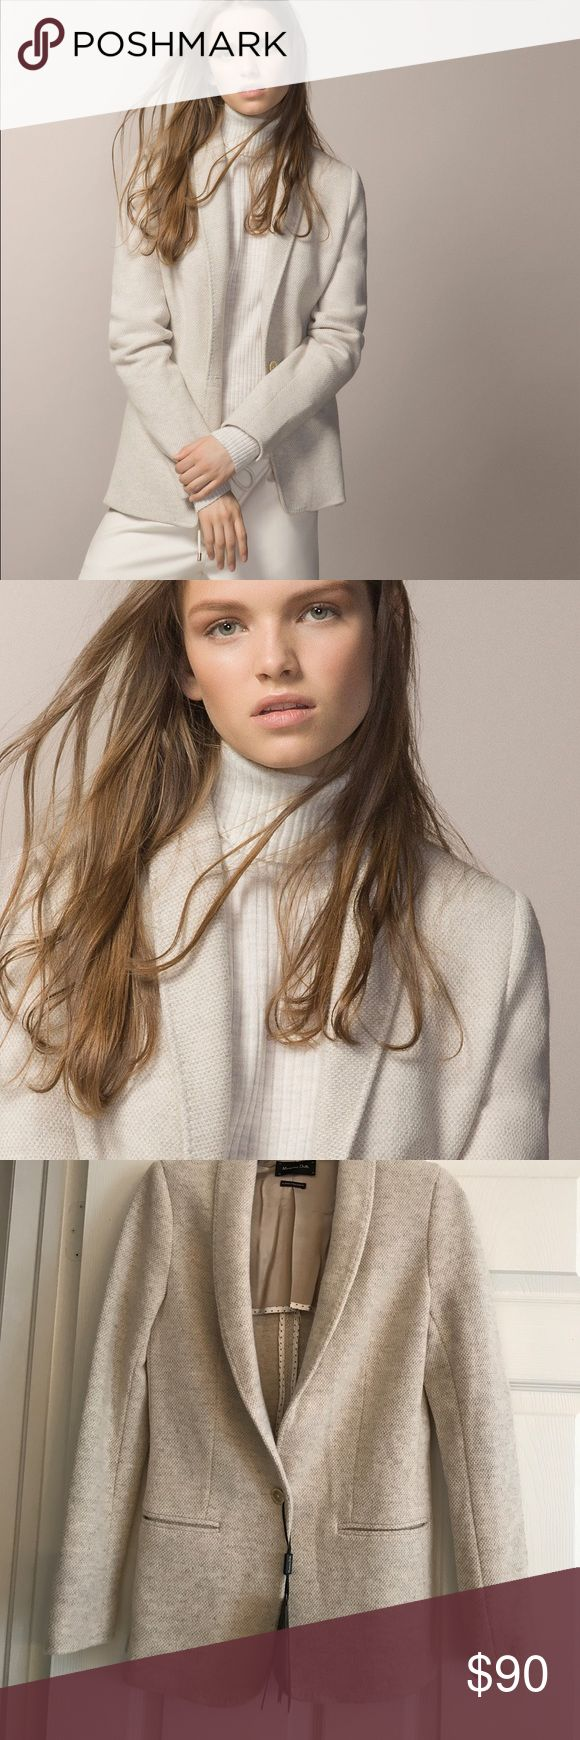 MASSIMO DUTTI LIGHT BEIGE JACKET❤️ This jacket is gorgeous Inside and Out!!! Wool blend.. beautiful colour that goes with Everything.. the interior rivals some of the best made jackets . Massimo Dutti Jackets & Coats